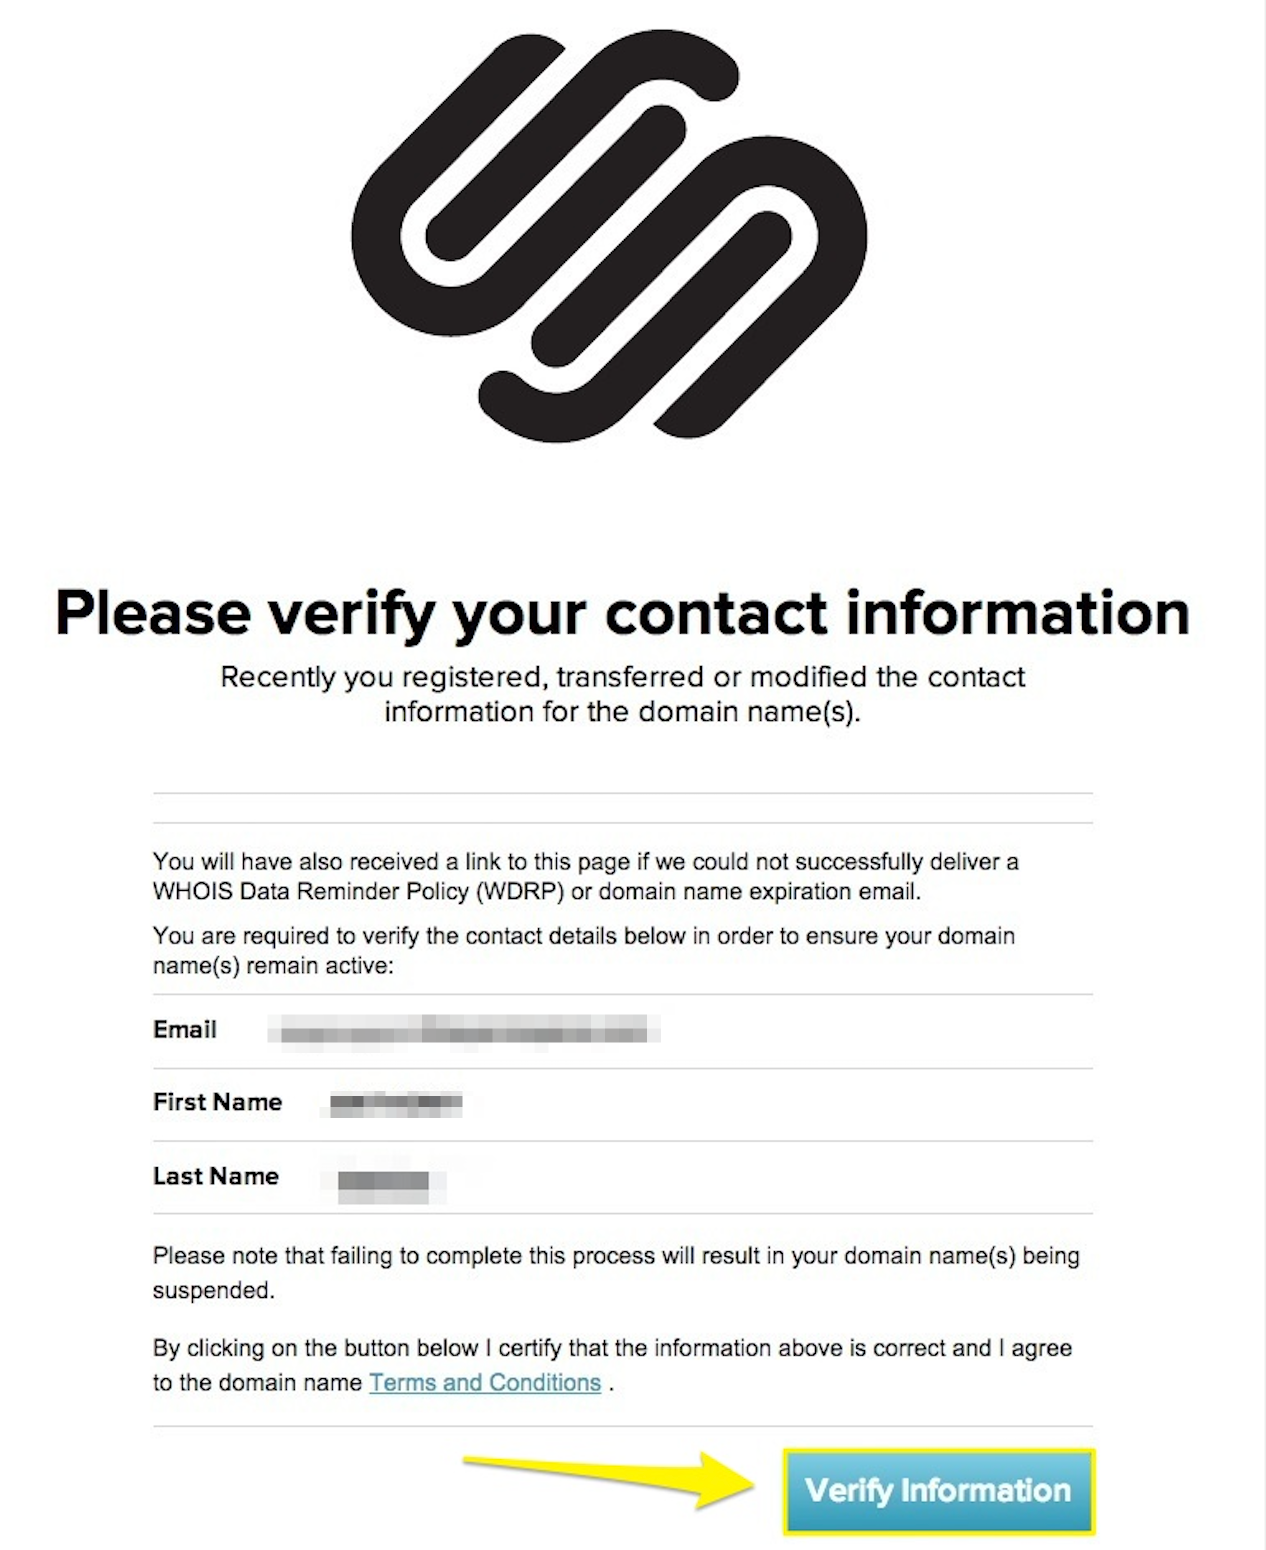 verify_info.png